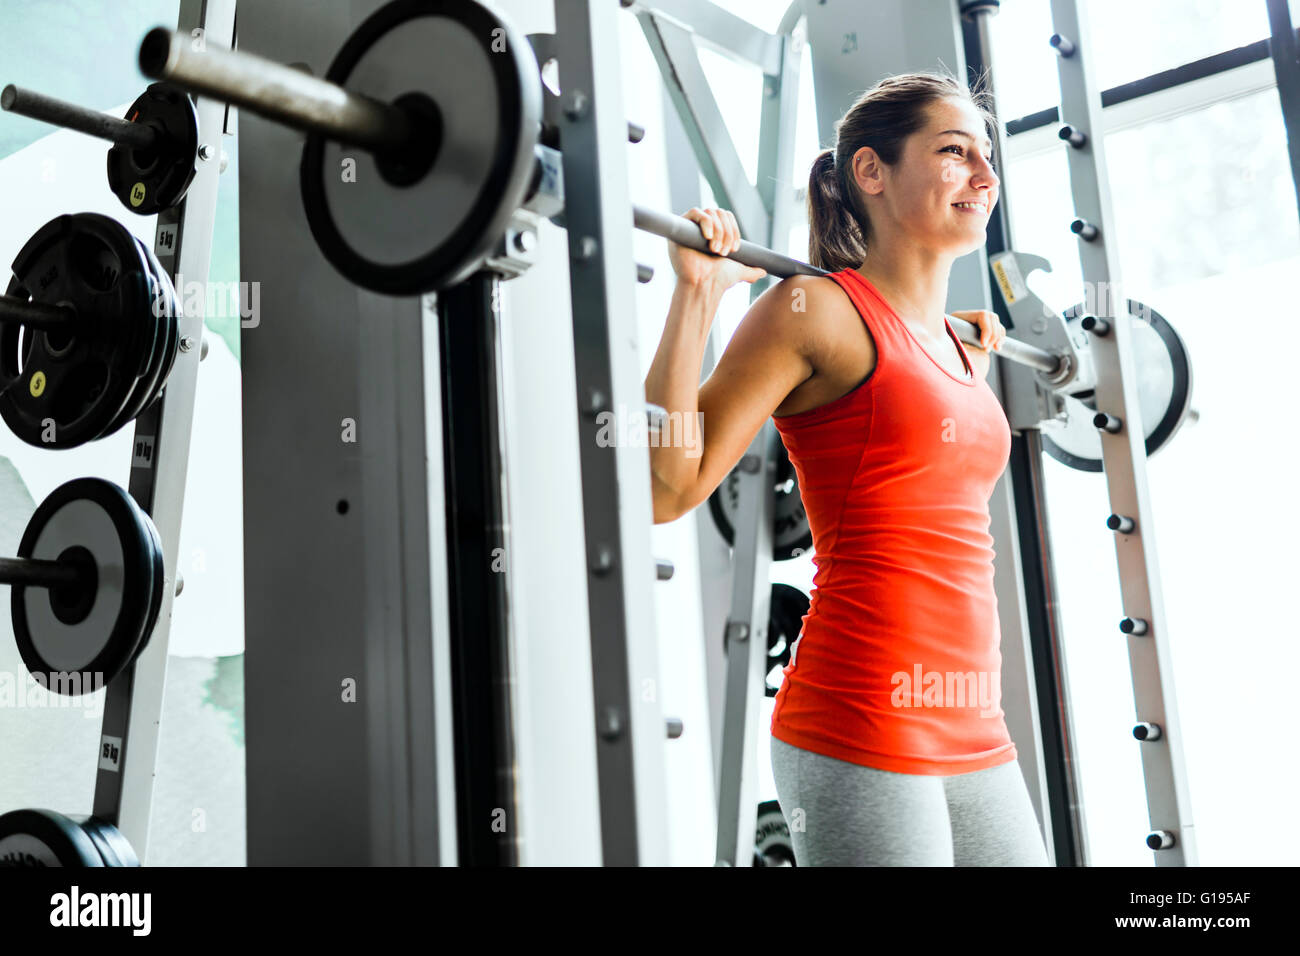 L'accent young Beautiful woman lifting weights in a gym Banque D'Images